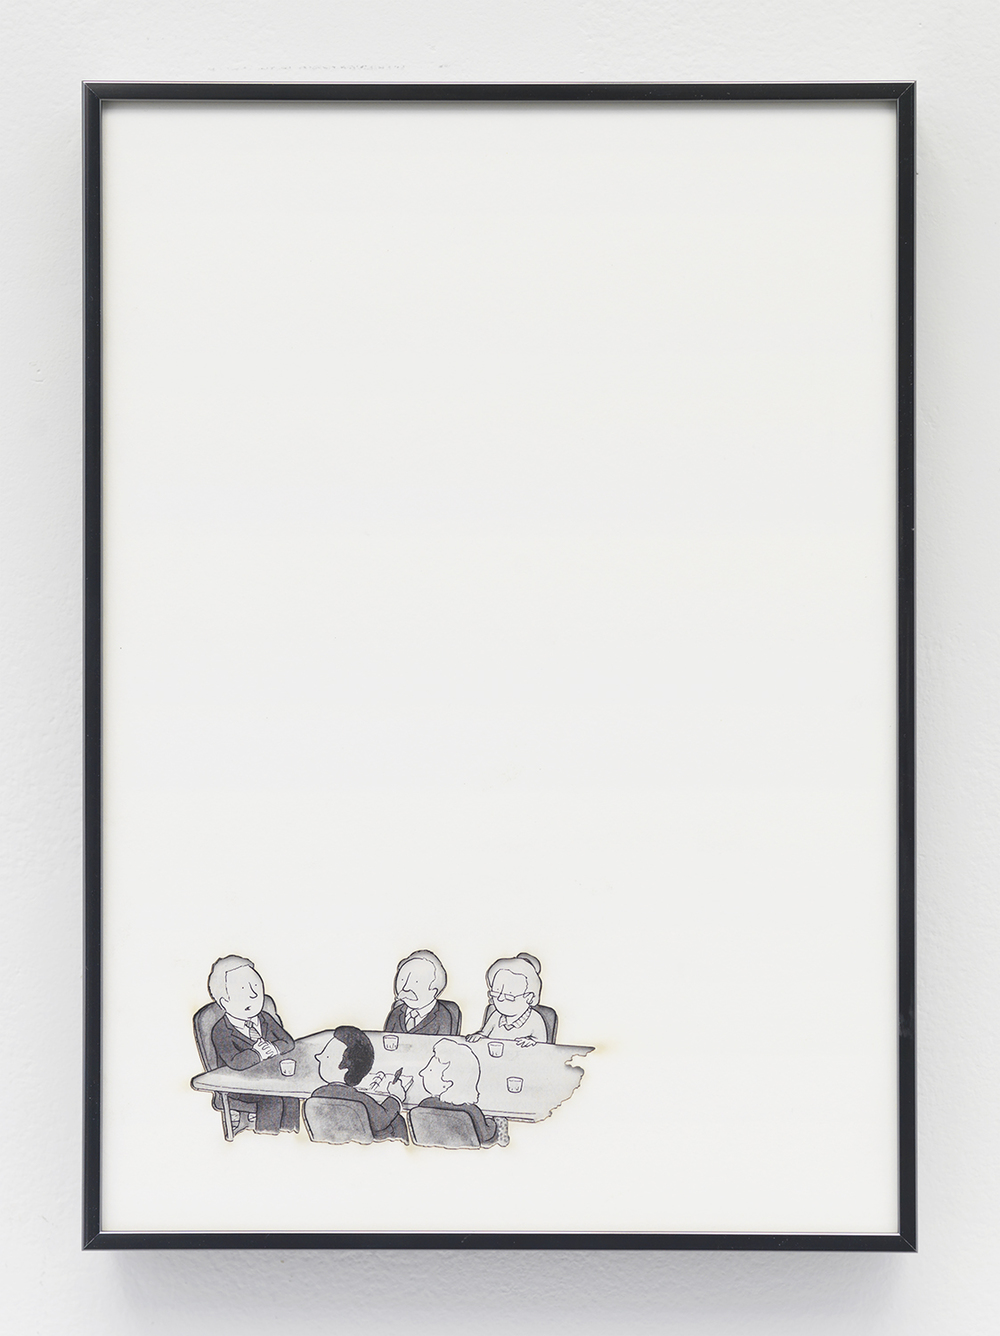 Artifact: Language Barrier (Robert Harris) 2014 Cotton and paper in artist frame 11 x 8 inches